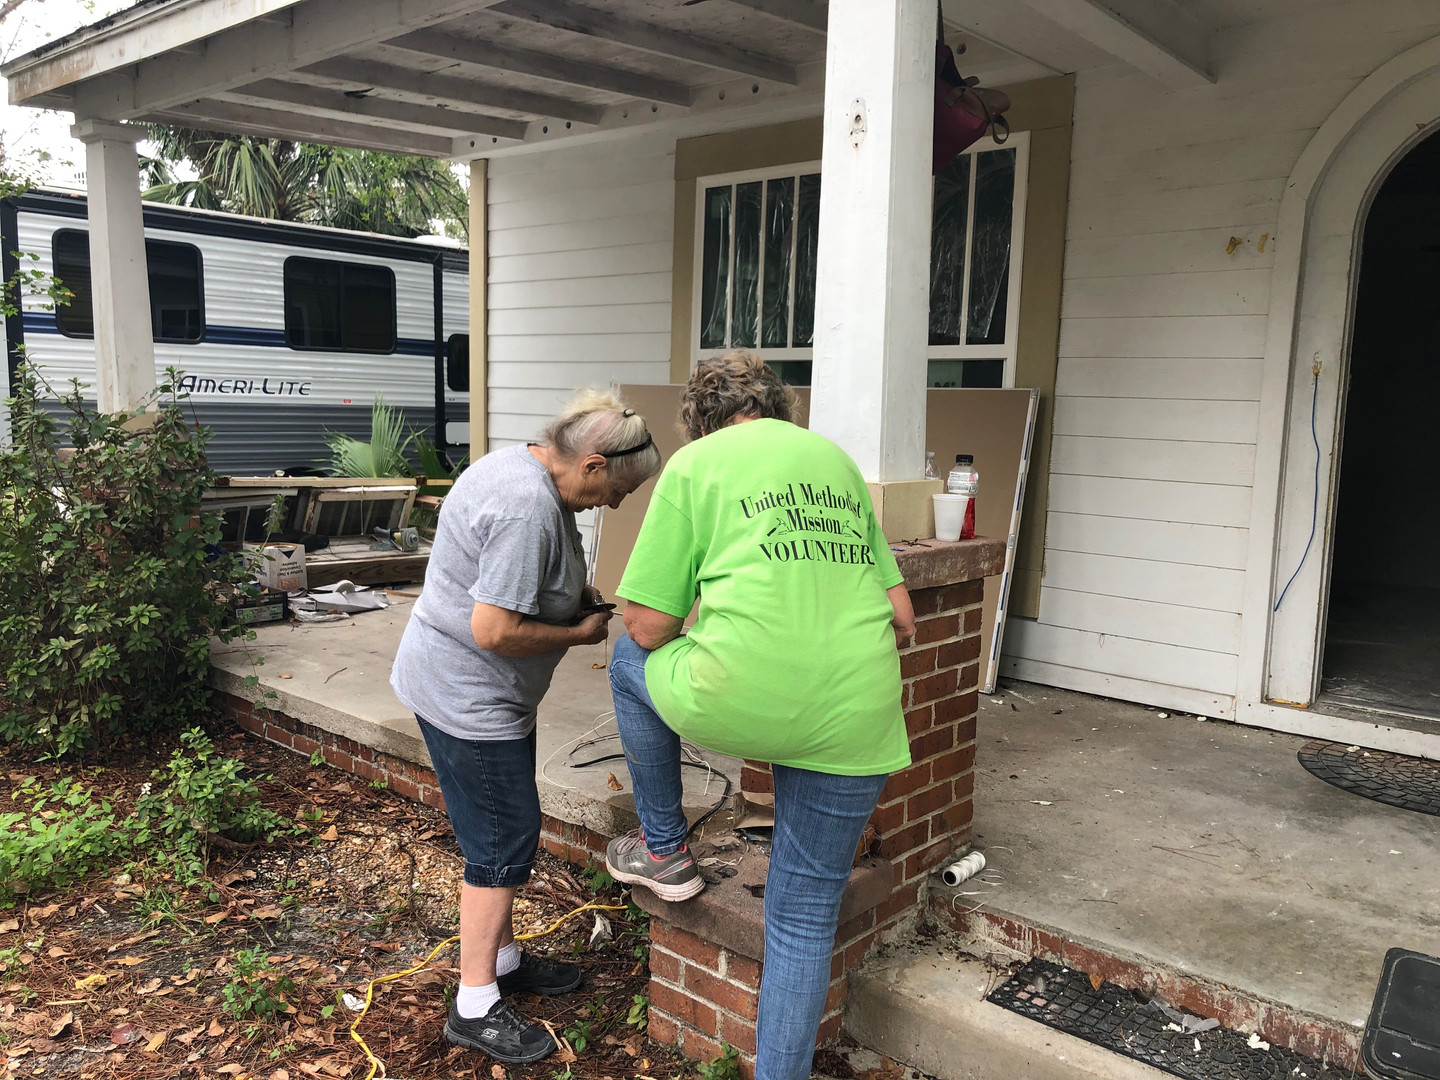 Volunteers in Mission in the area assisting UMCOR with the community